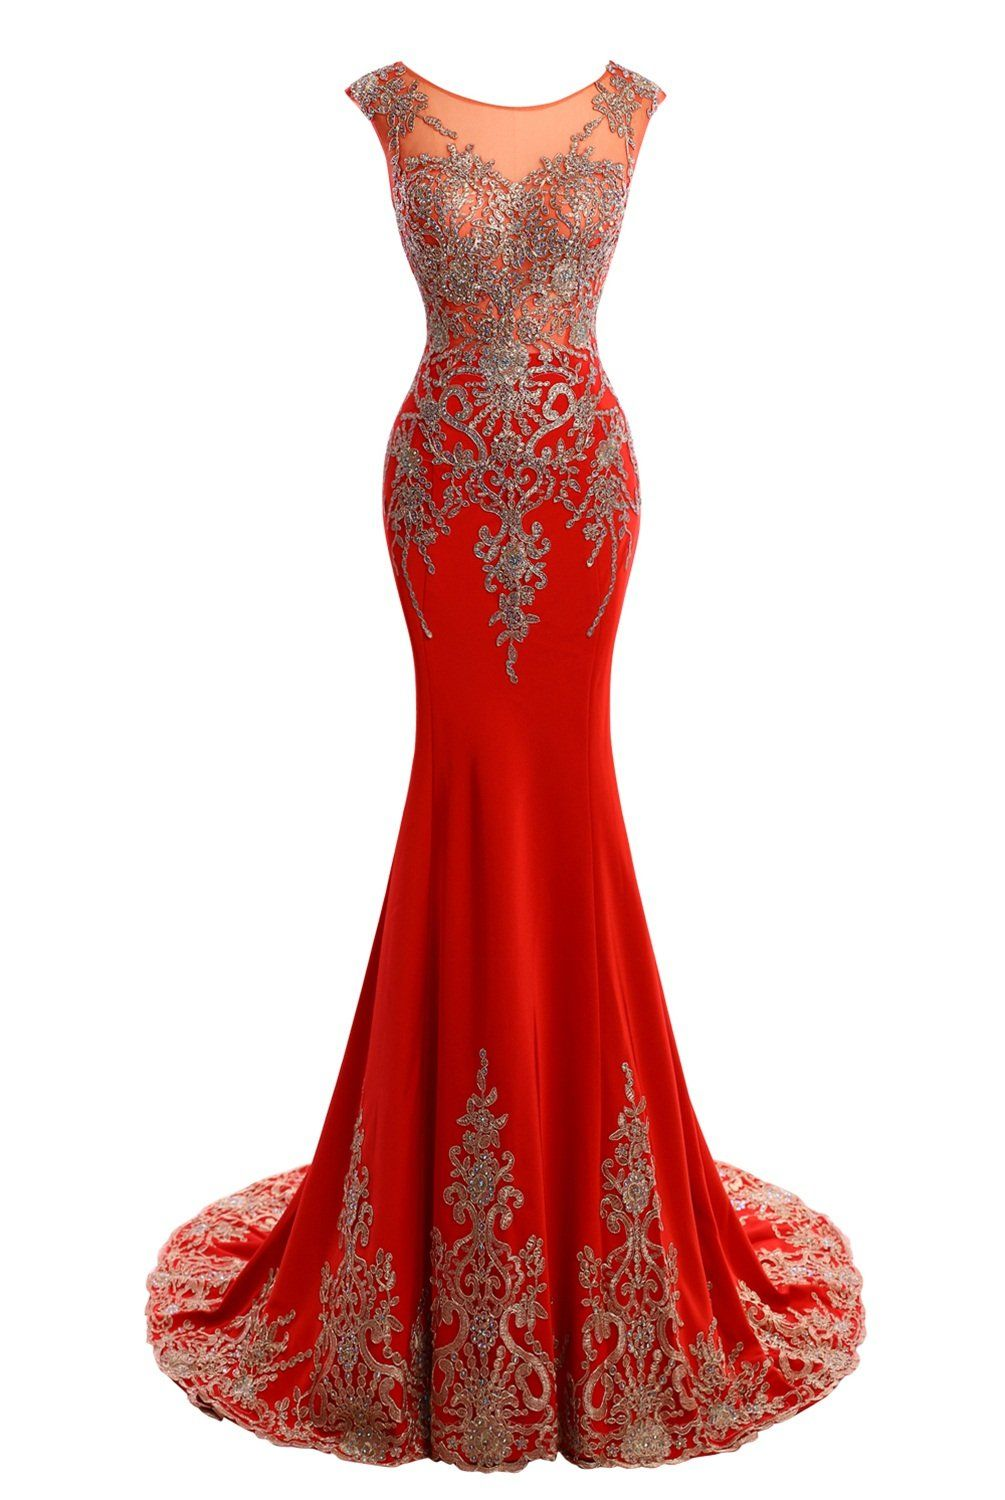 Judybridal women long mermaid formal evening dress with beads and